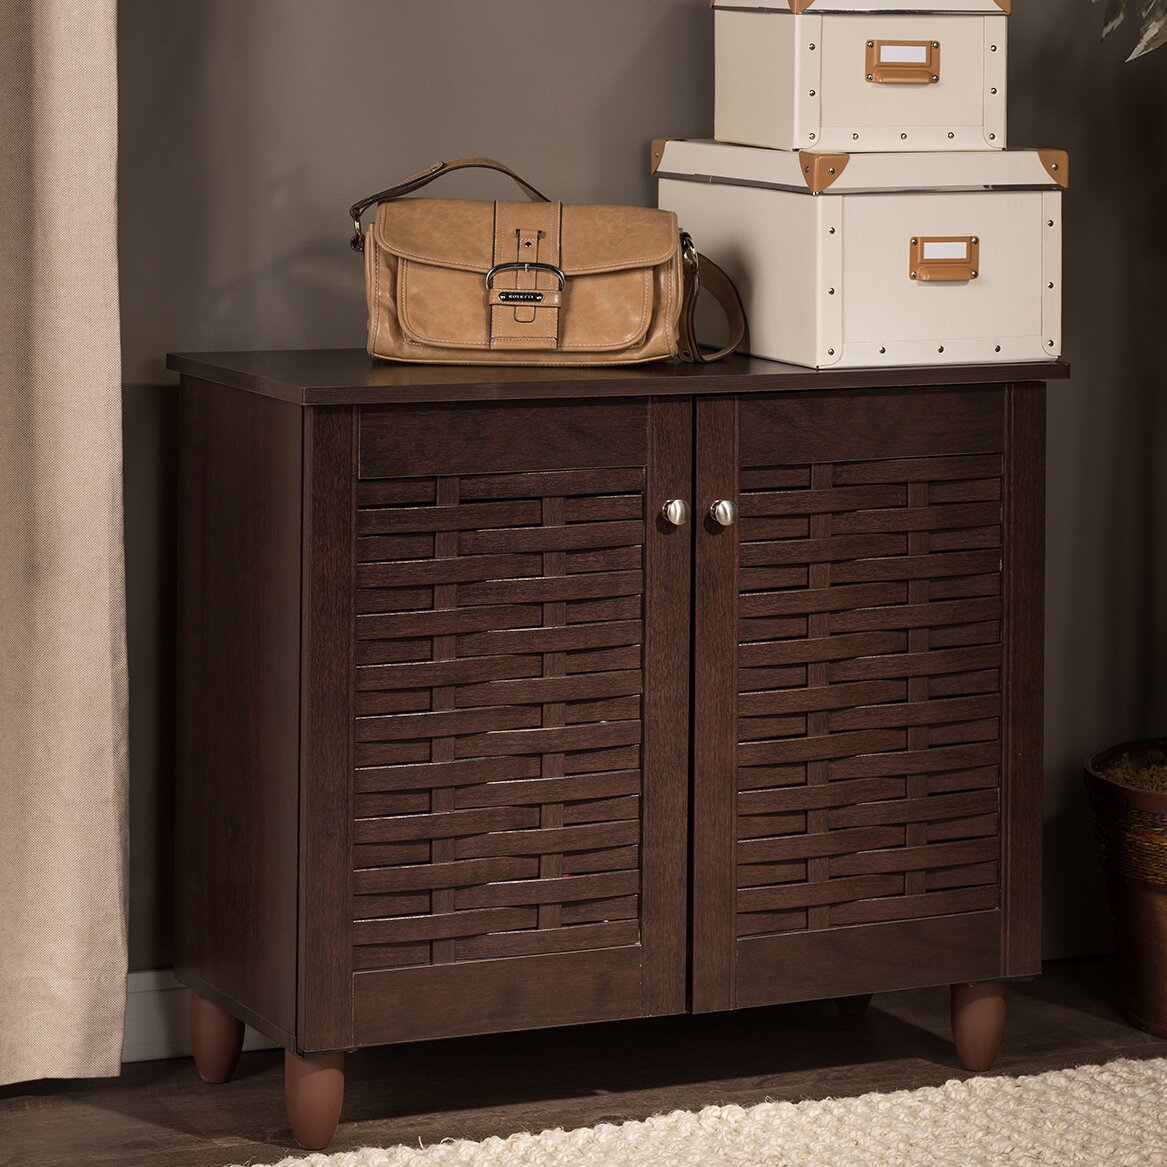 Entryway Cabinets: Wholesale Interiors Baxton Studio Winda 9-Pair Shoe